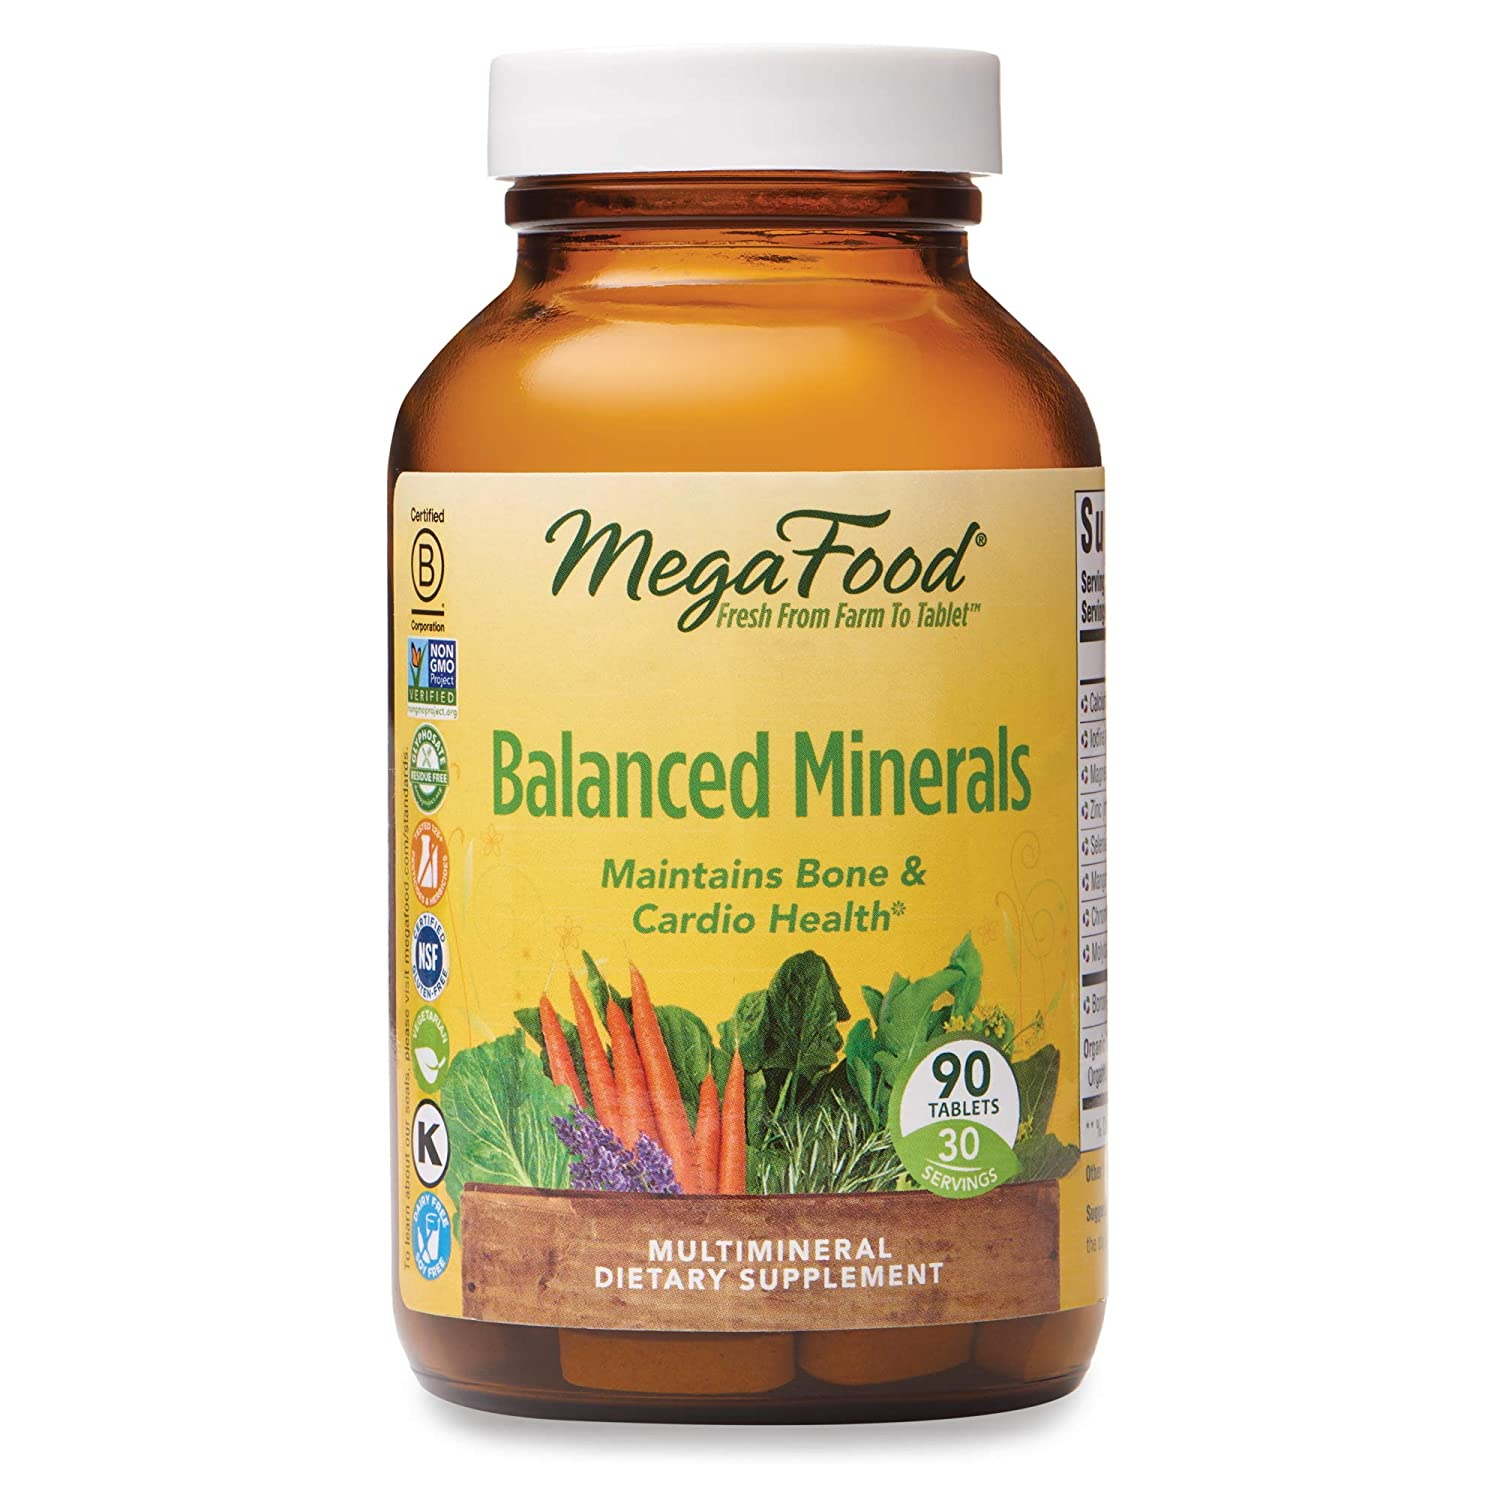 MegaFood, Balanced Minerals, Helps Maintain Bone and Cardiovascular Health, Multivitamin Supplement, Gluten Free, Vegetarian, 90 Tablets (30 Servings) (FFP)